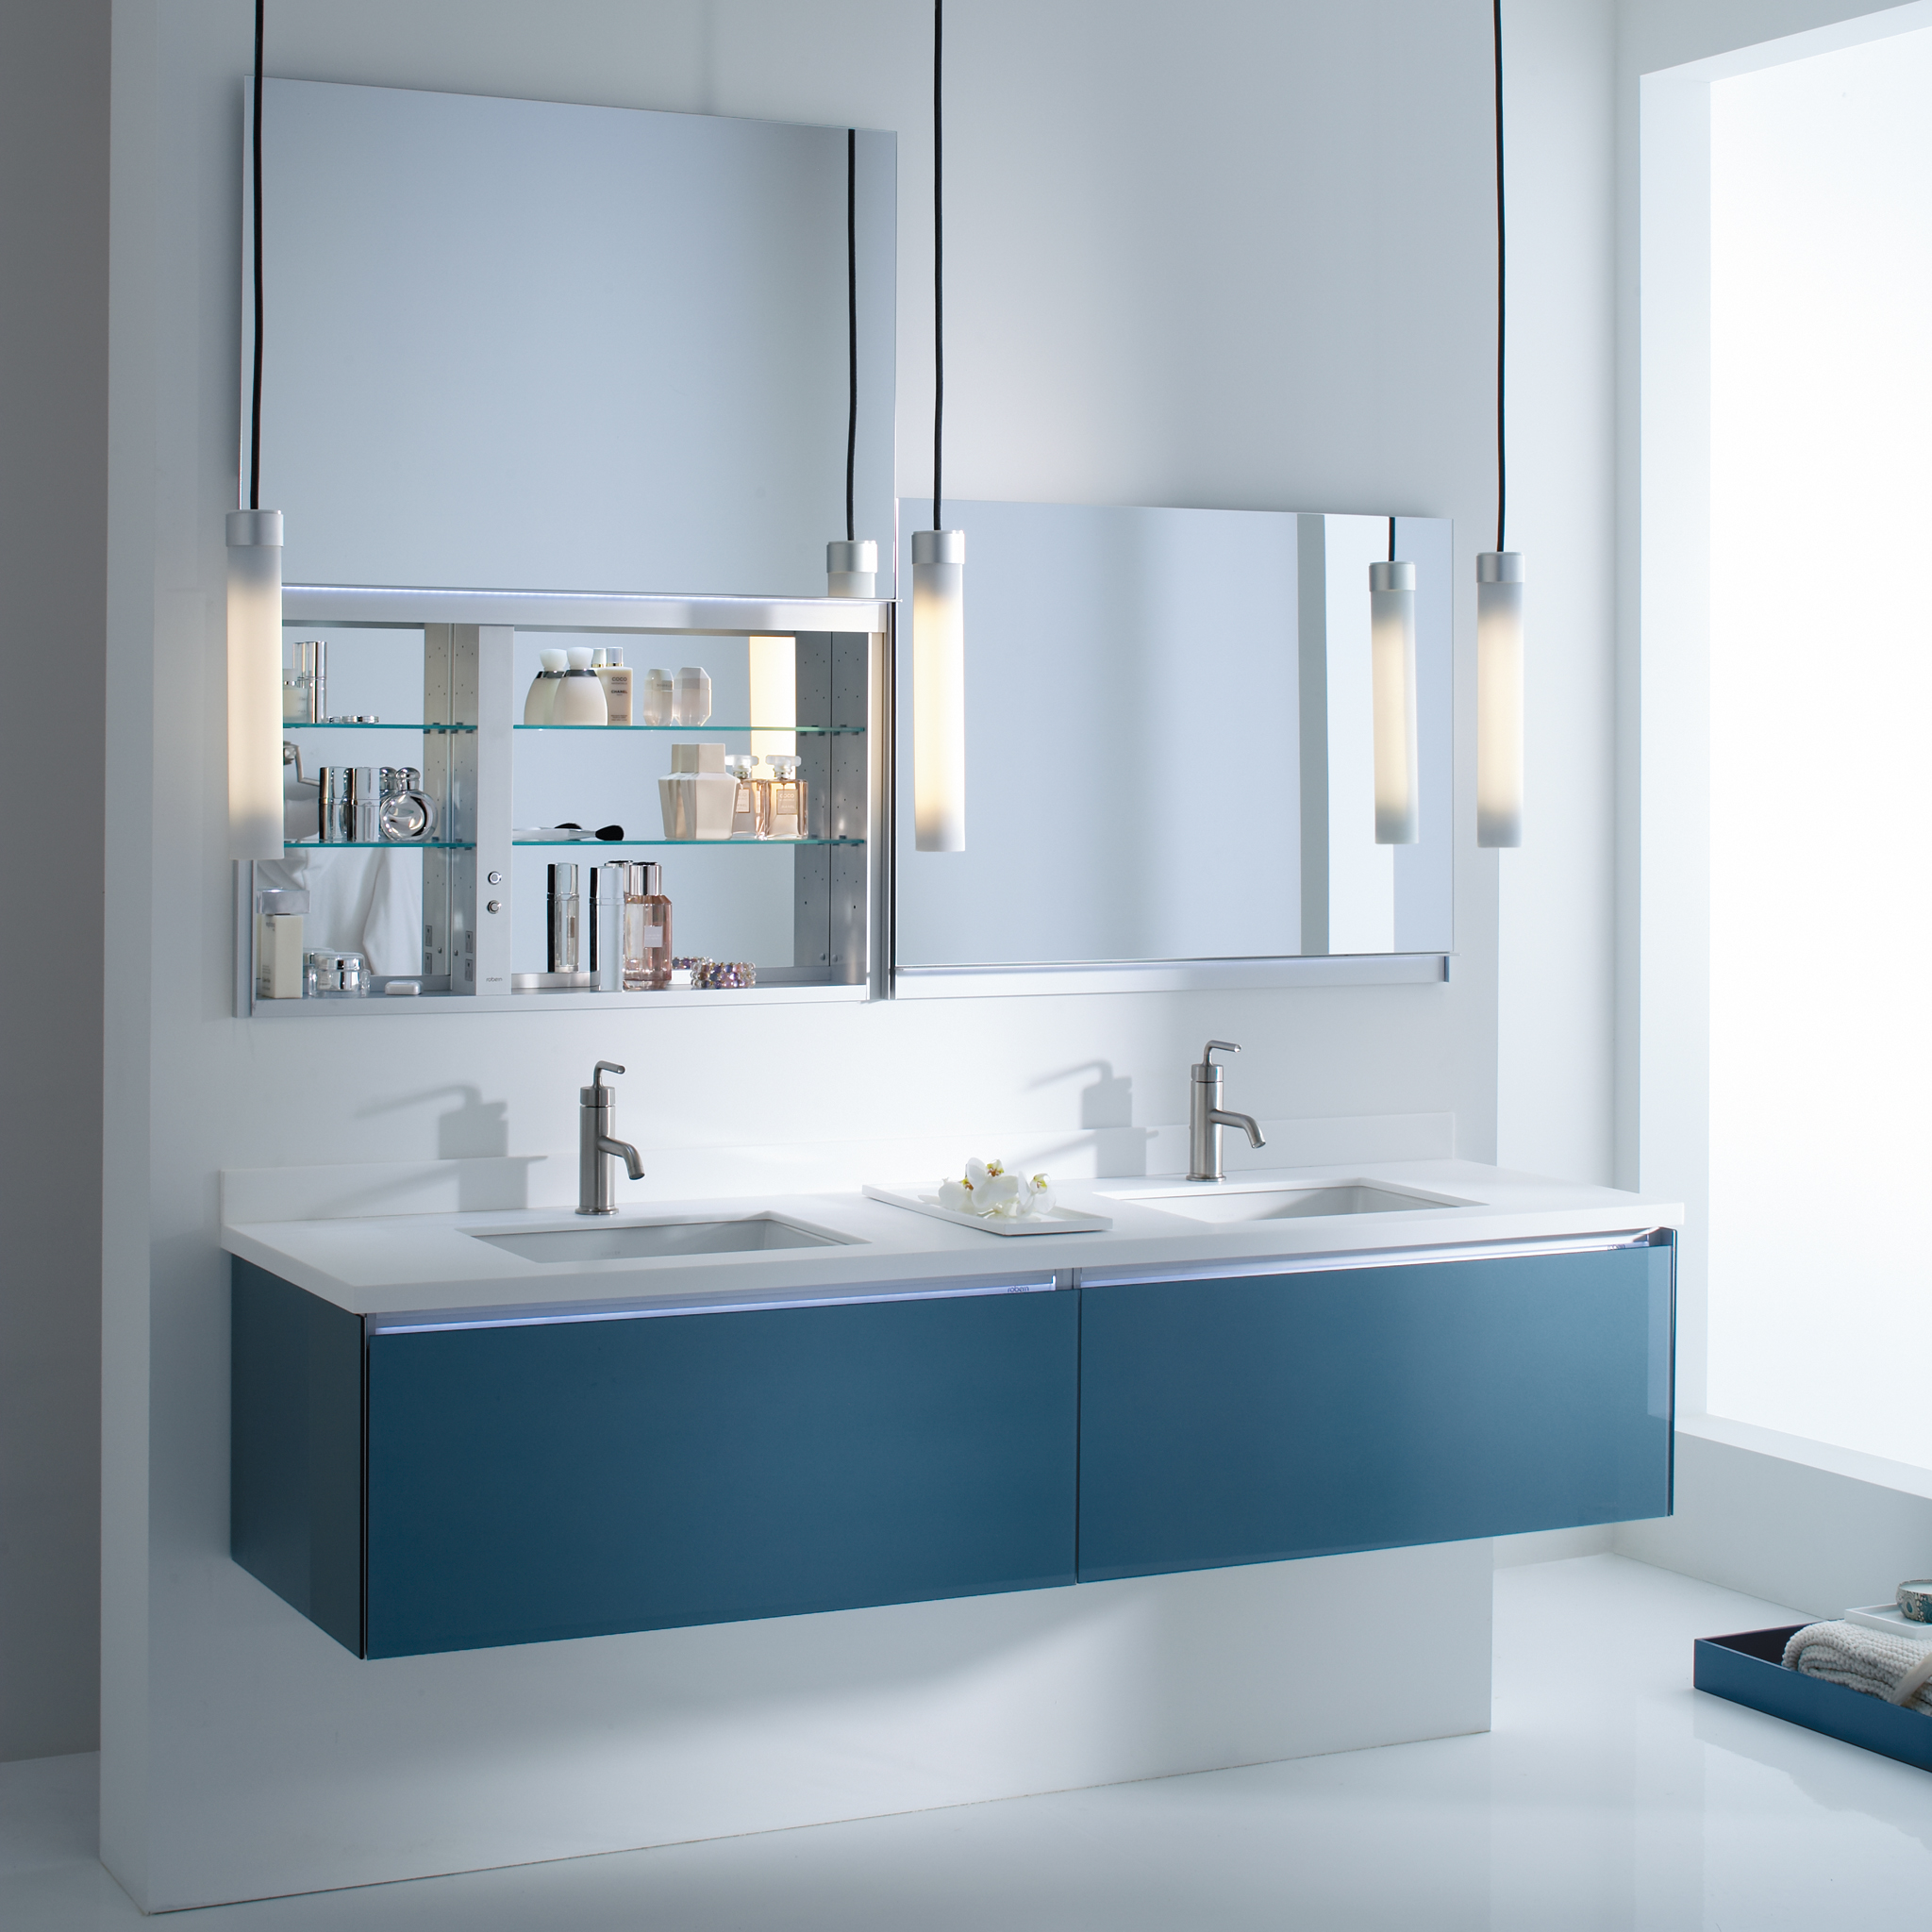 bathroom cabinet ideas wonderful with kohler mirrored medicine attractive for cabinets robern bedroom